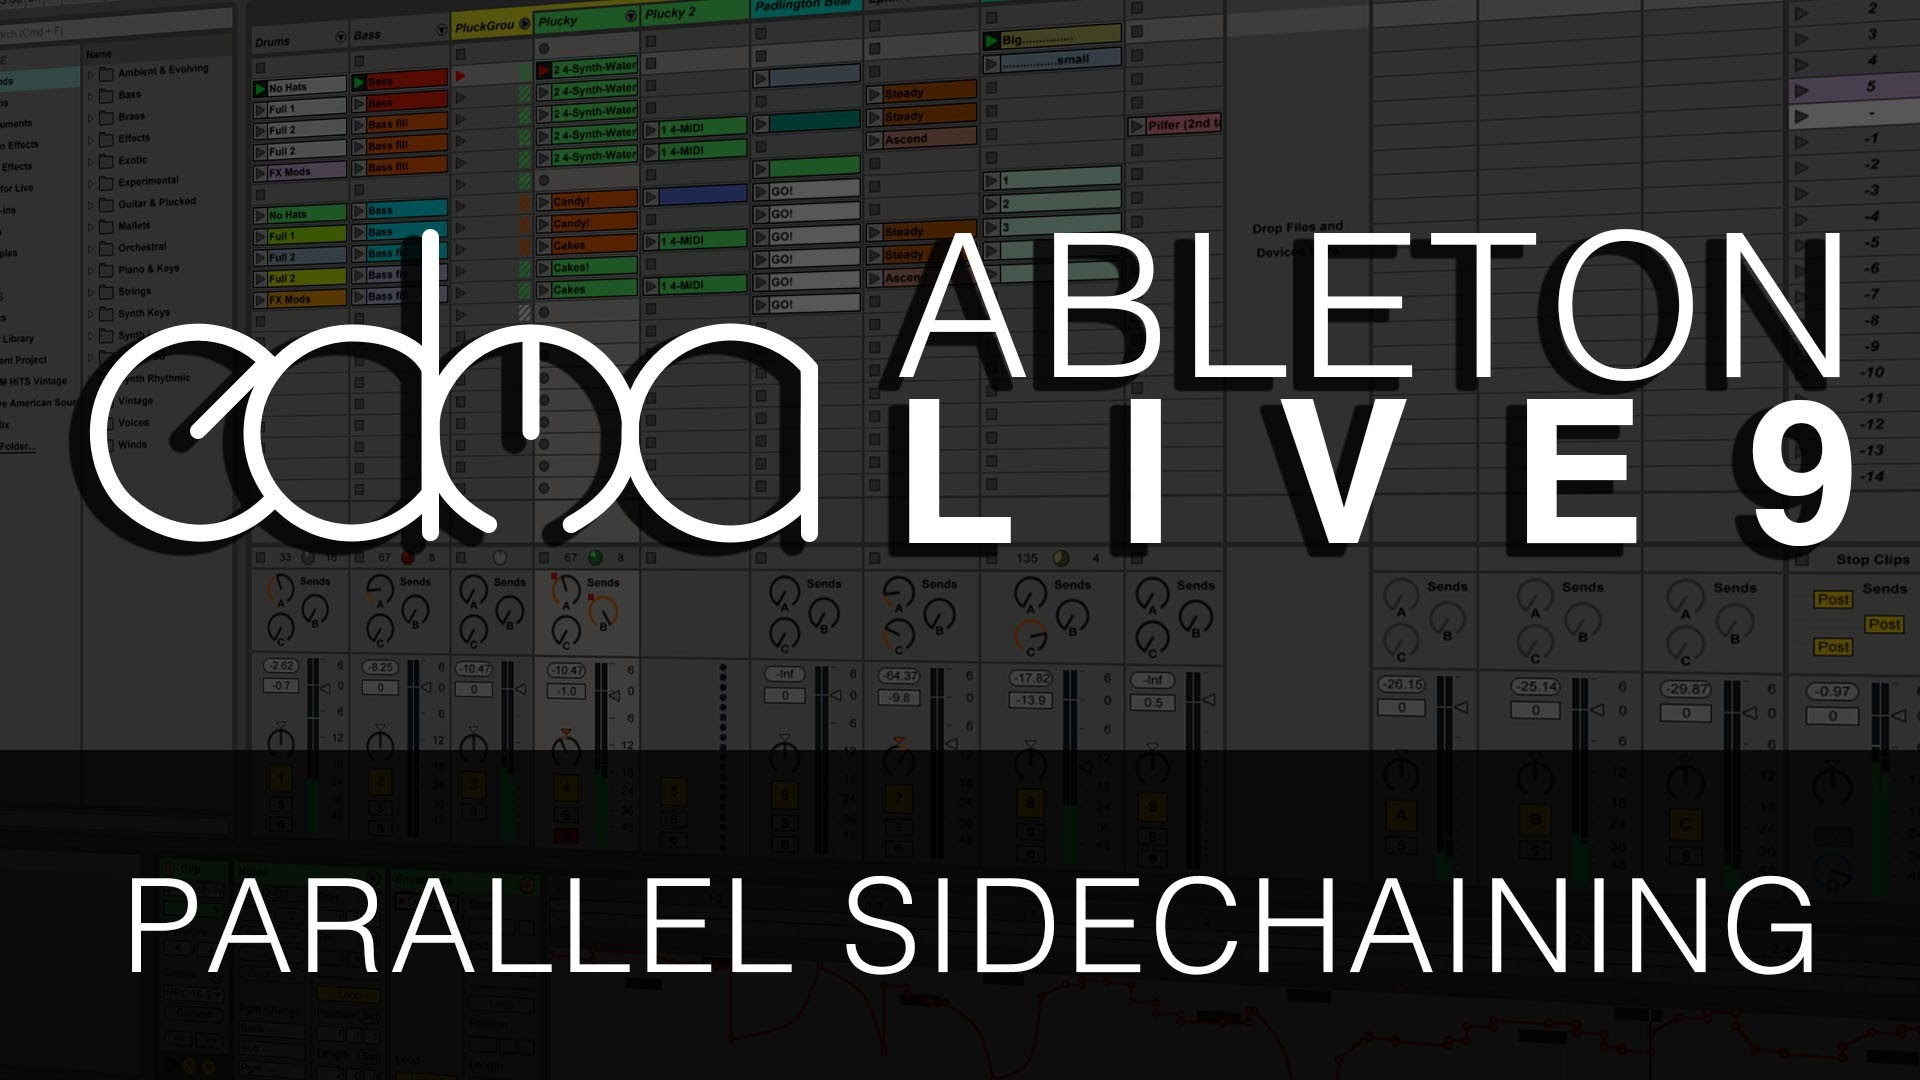 Tutorial: Parallel Sidechaining in Ableton Live